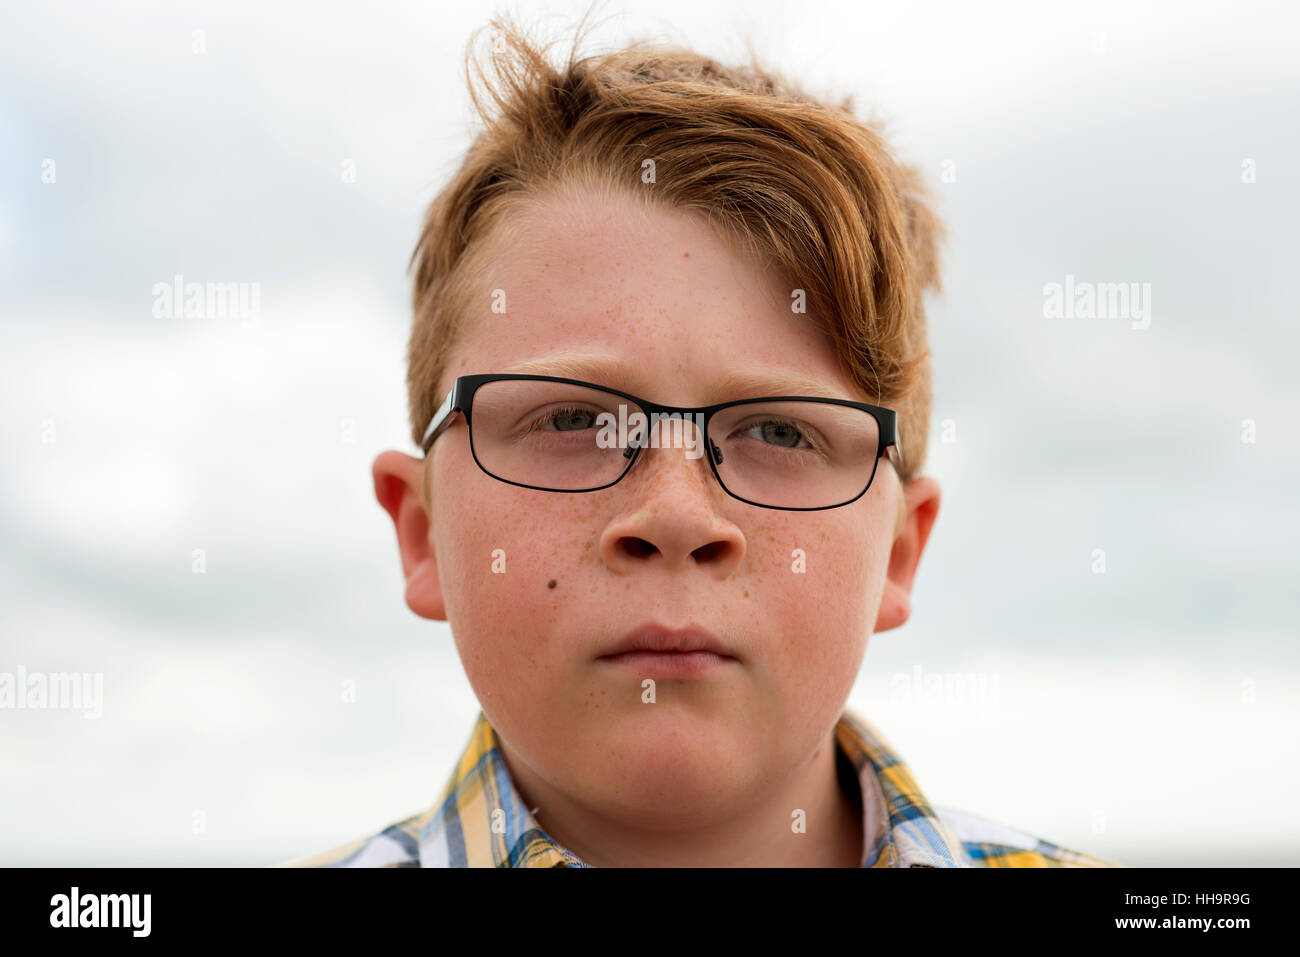 b7494db3f85f 11-year old ginger haired boy wearing glasses Stock Photo: 131137596 ...